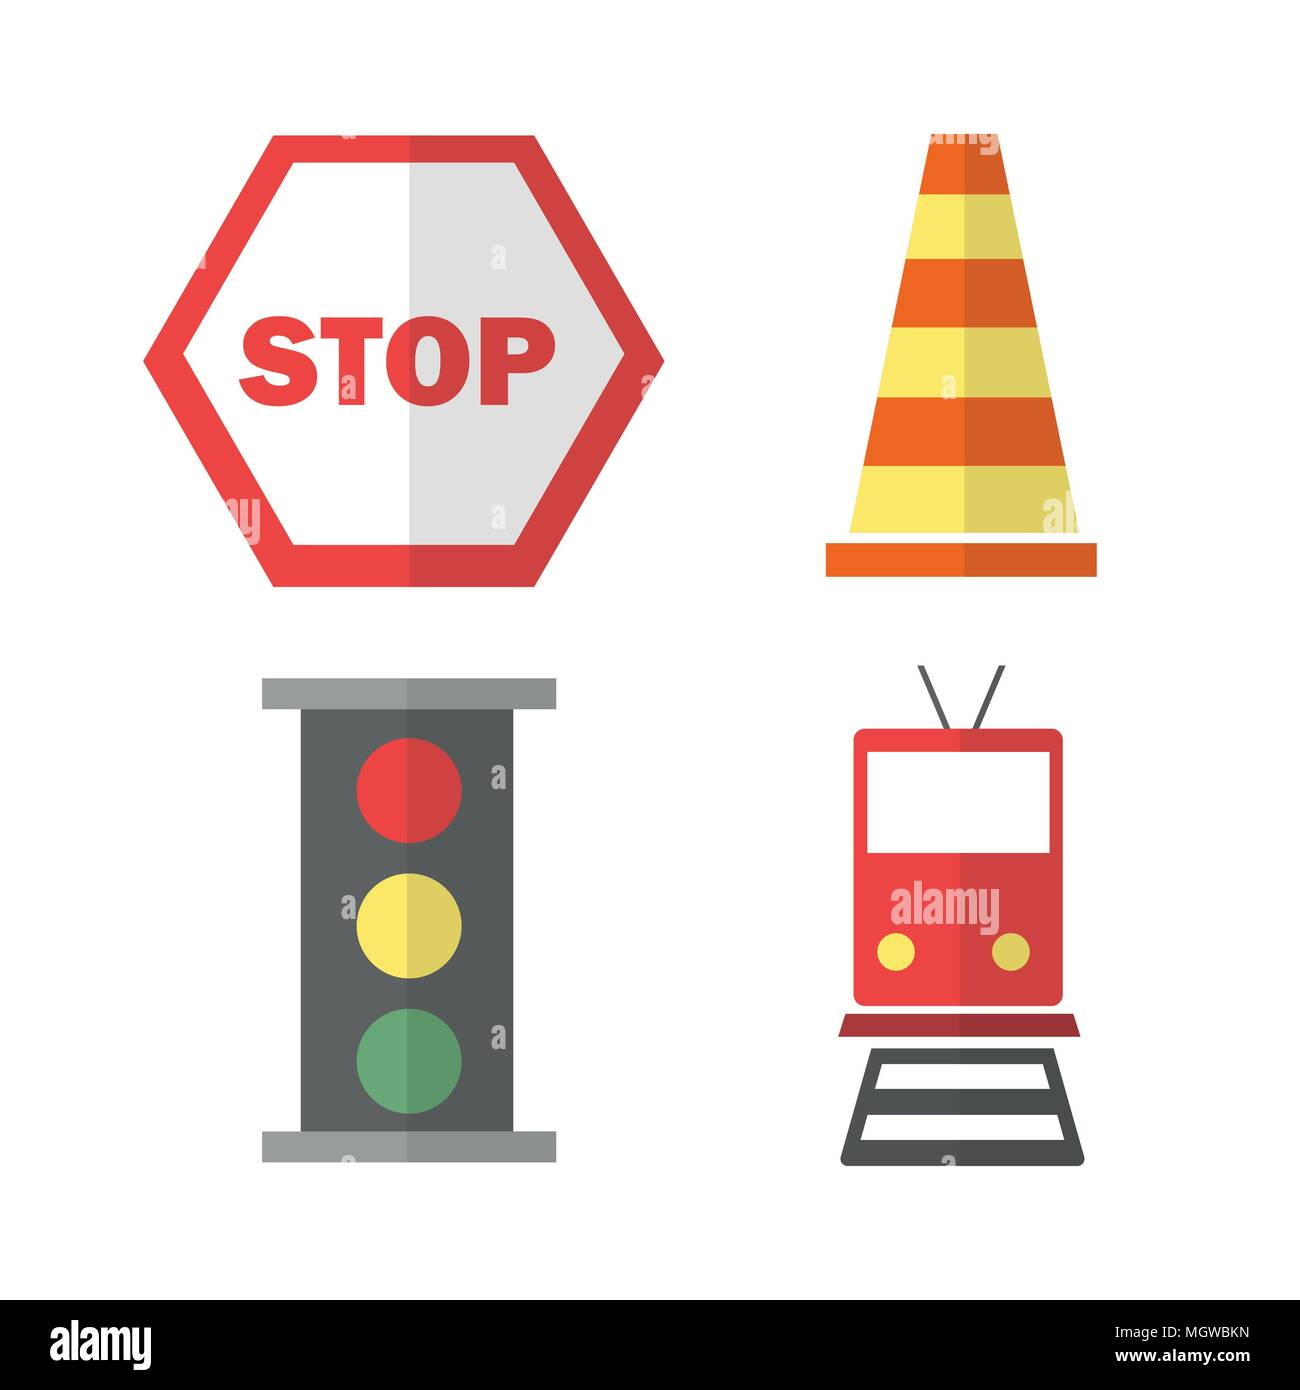 icons set about Transportation. with train, stop sign, cone and traffic light - Stock Image